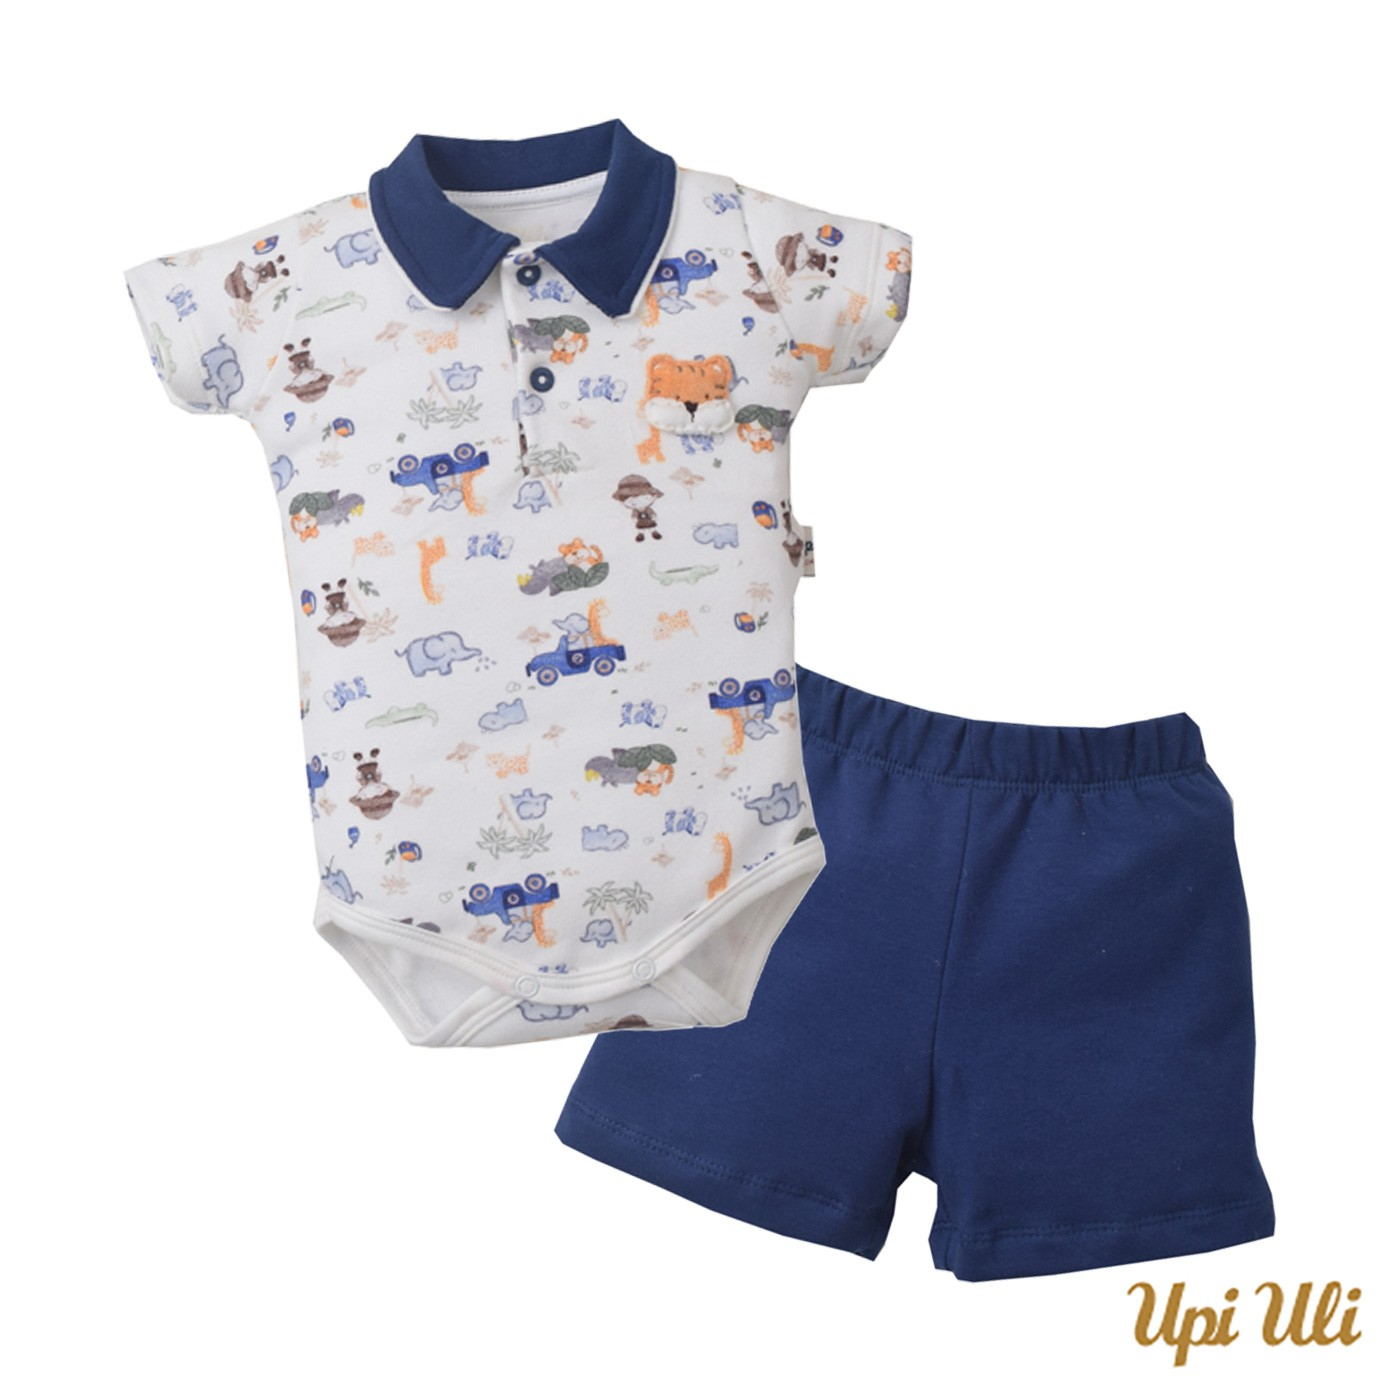 Conj. Body Polo C/ Shorts Suedine/Moletinho Safari (1)